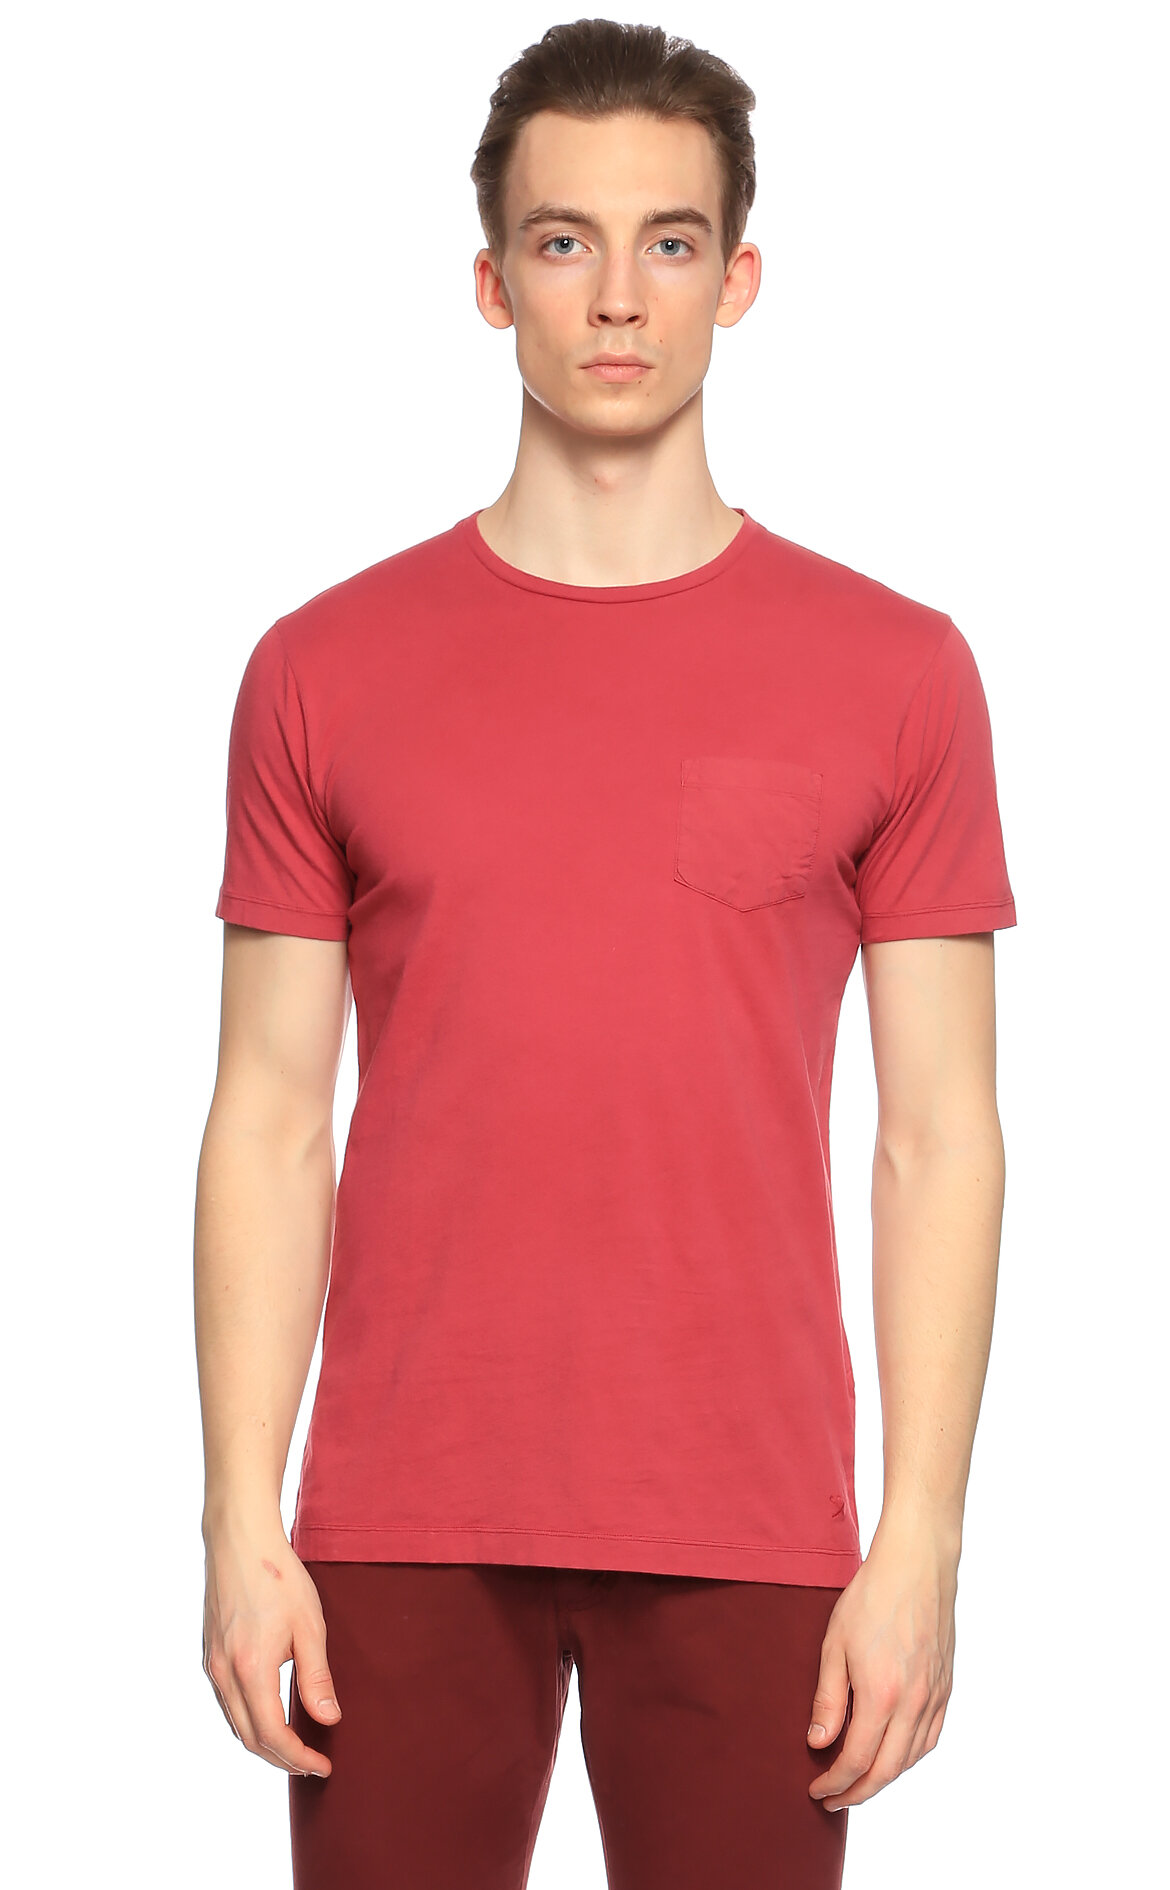 Hackett-Hackett Bordo T-Shirt